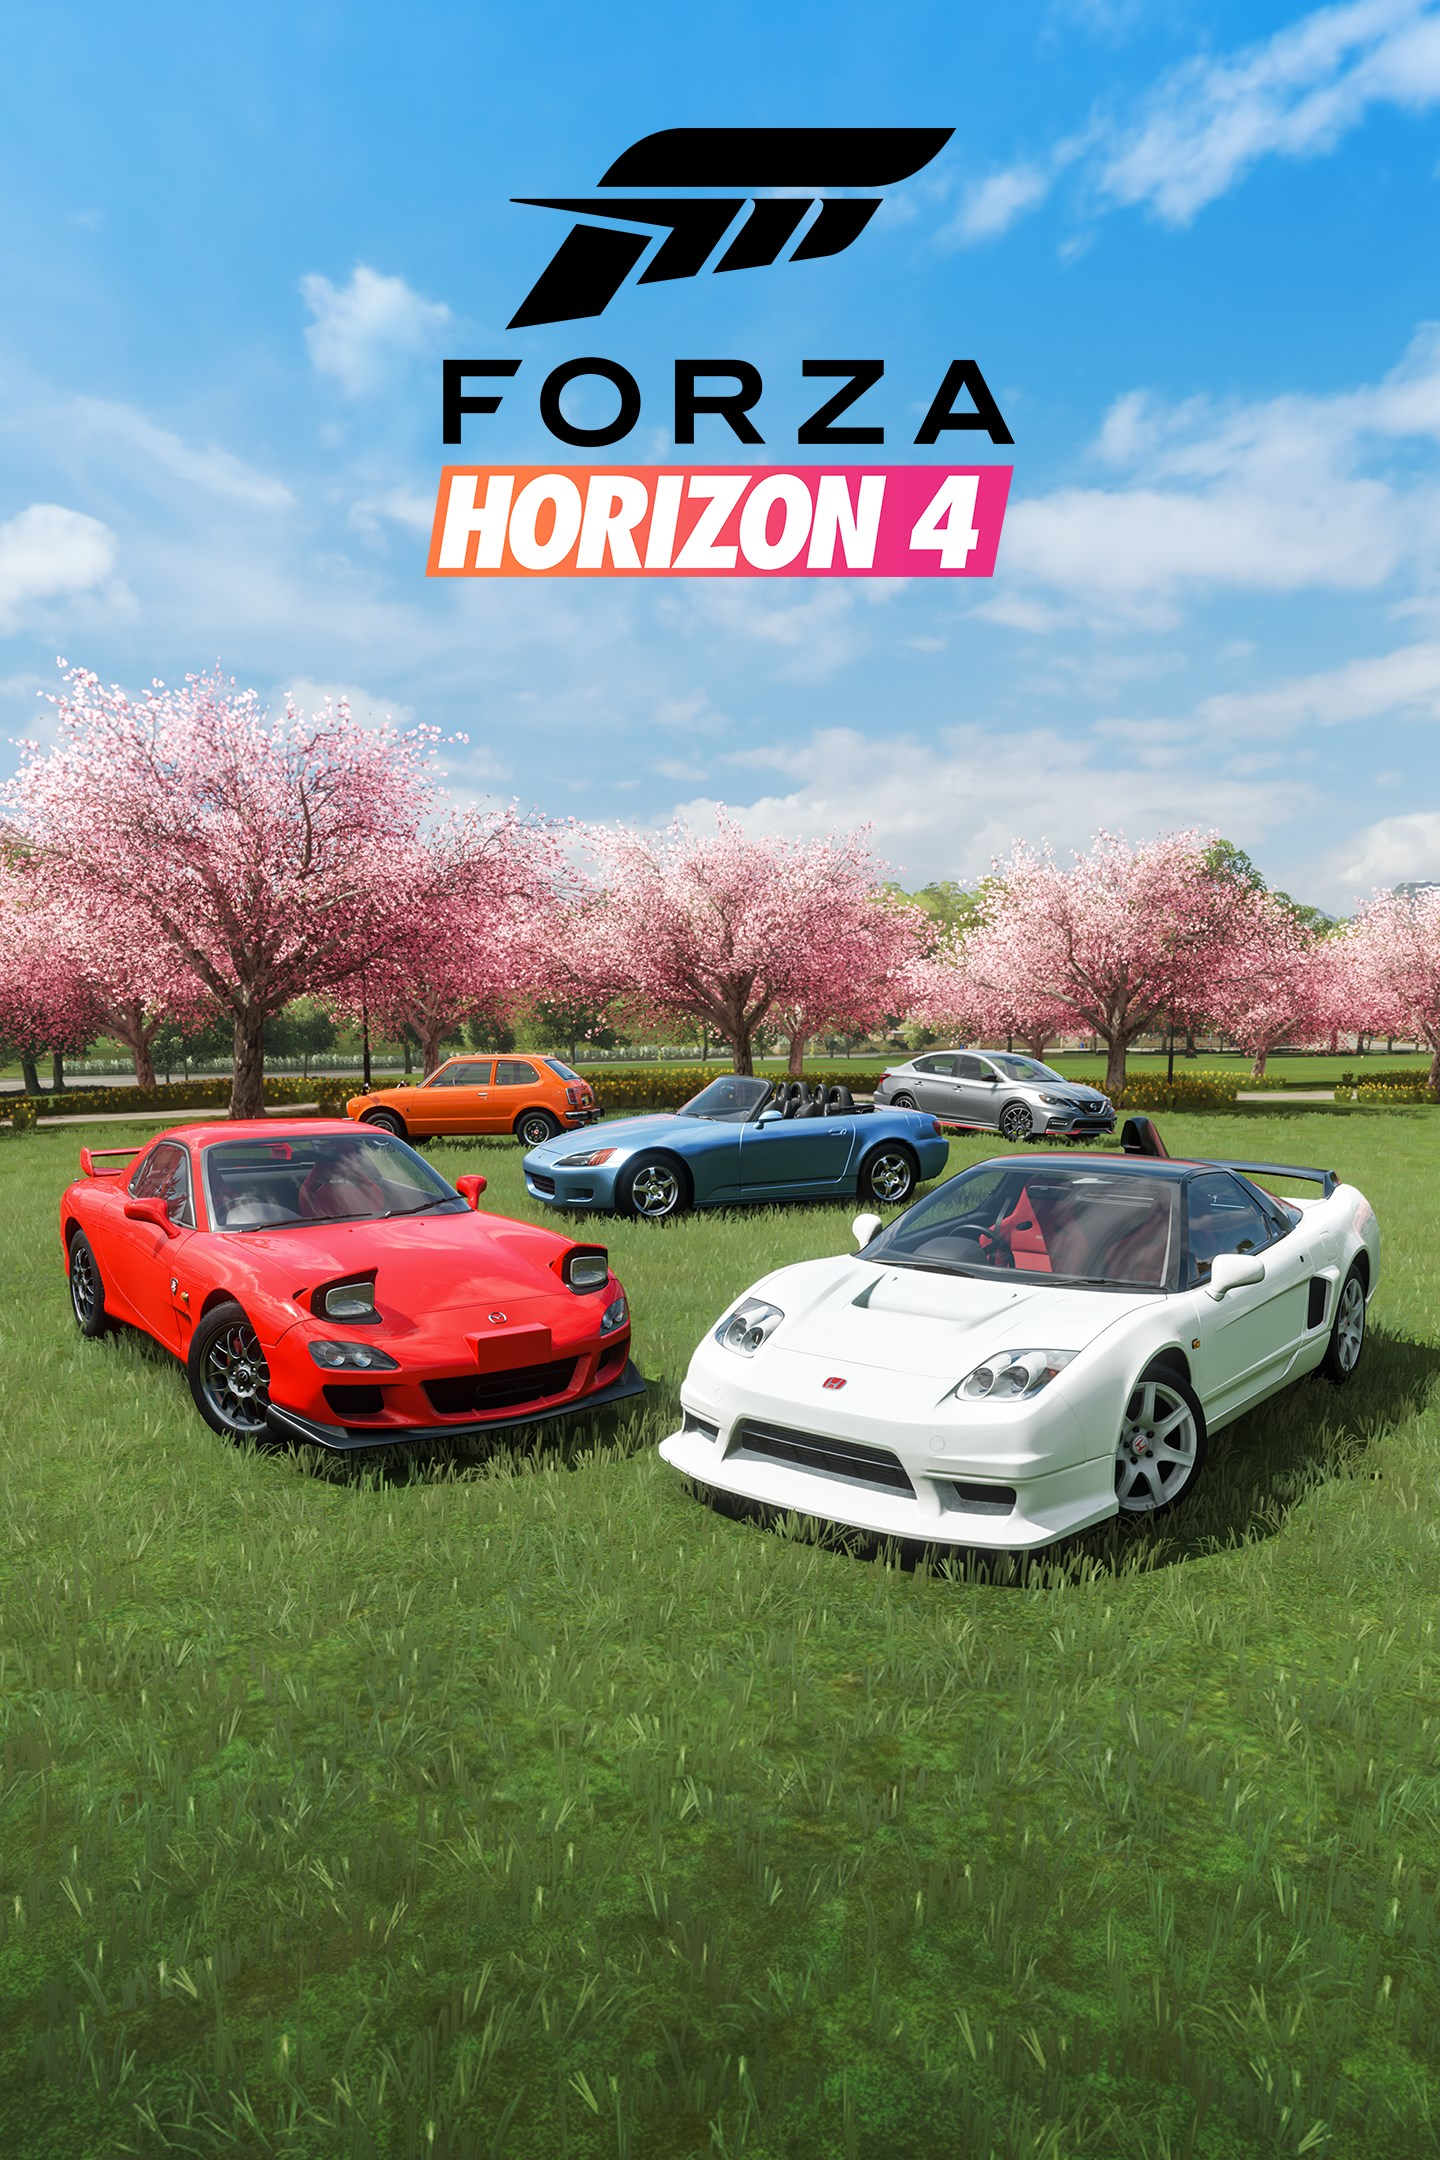 Forza Horizon 4/Japanese Heroes Car Pack